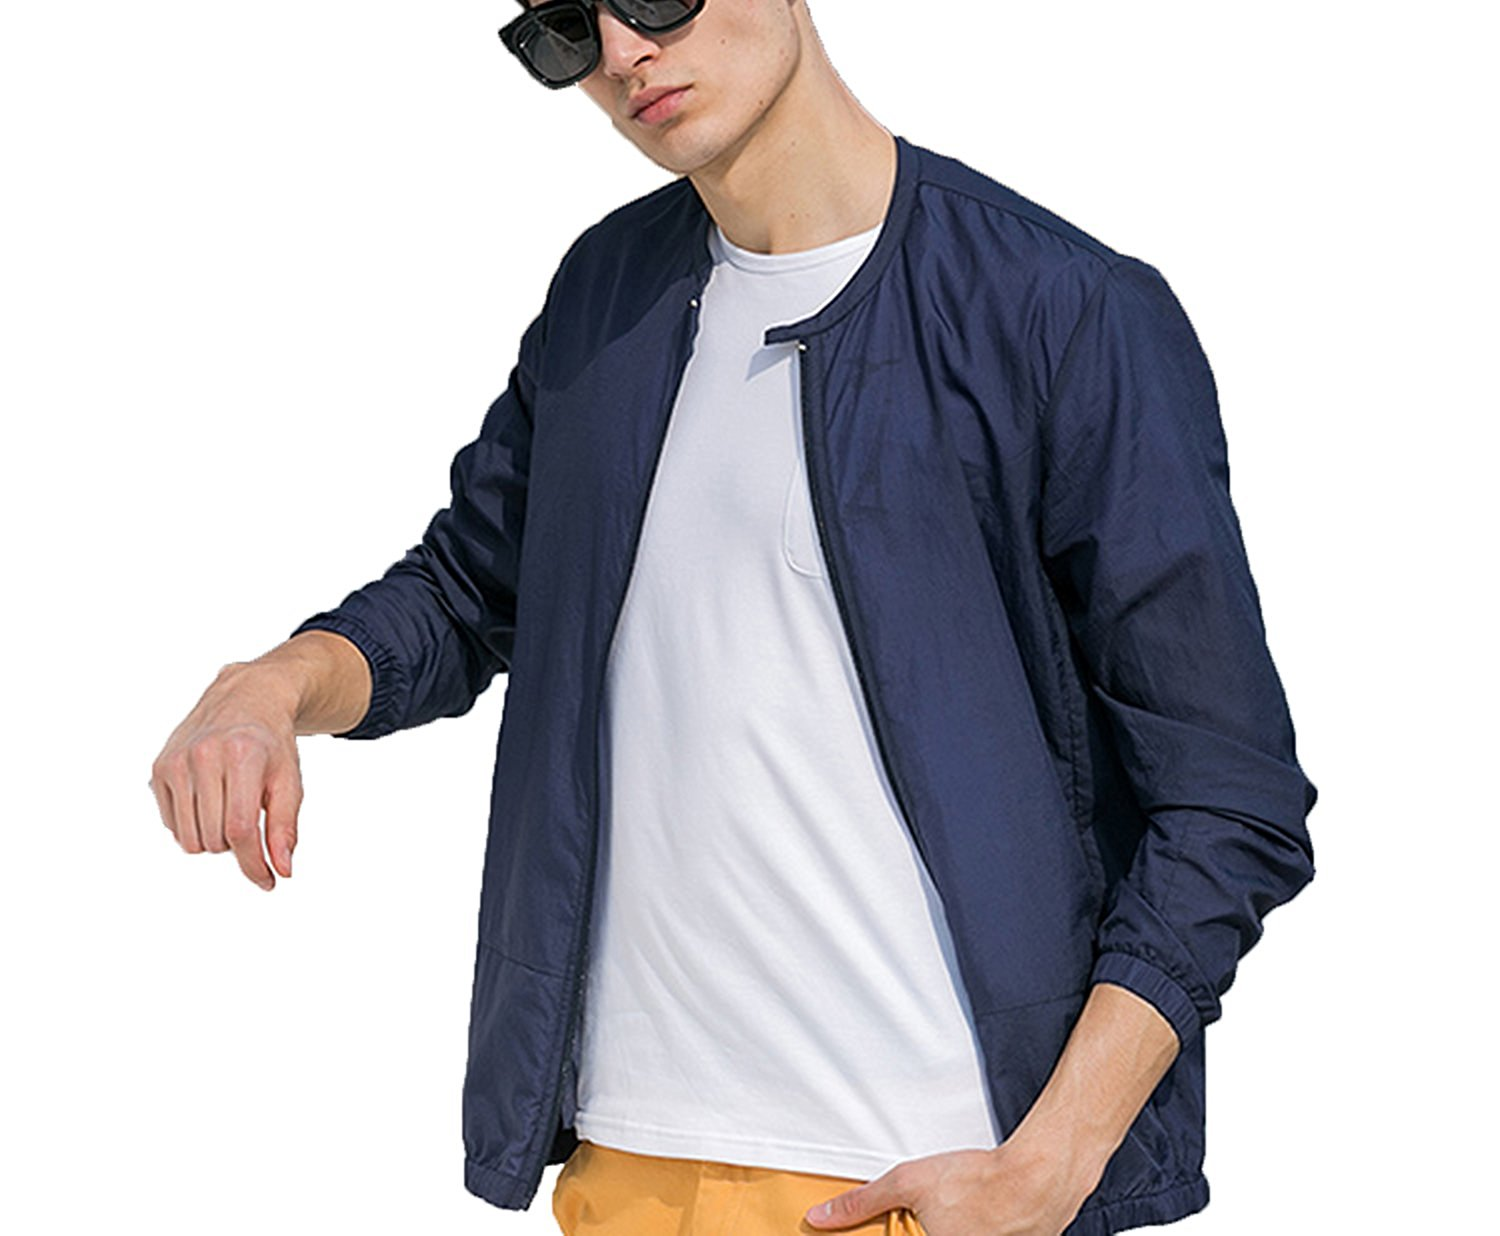 0e26c4e718d9 Get Quotations · Fashion-Lover Summer Sun Protection Clothing Men Jacket  Ultra Light Breathable Waterproof Jacket Men s Sunscreen